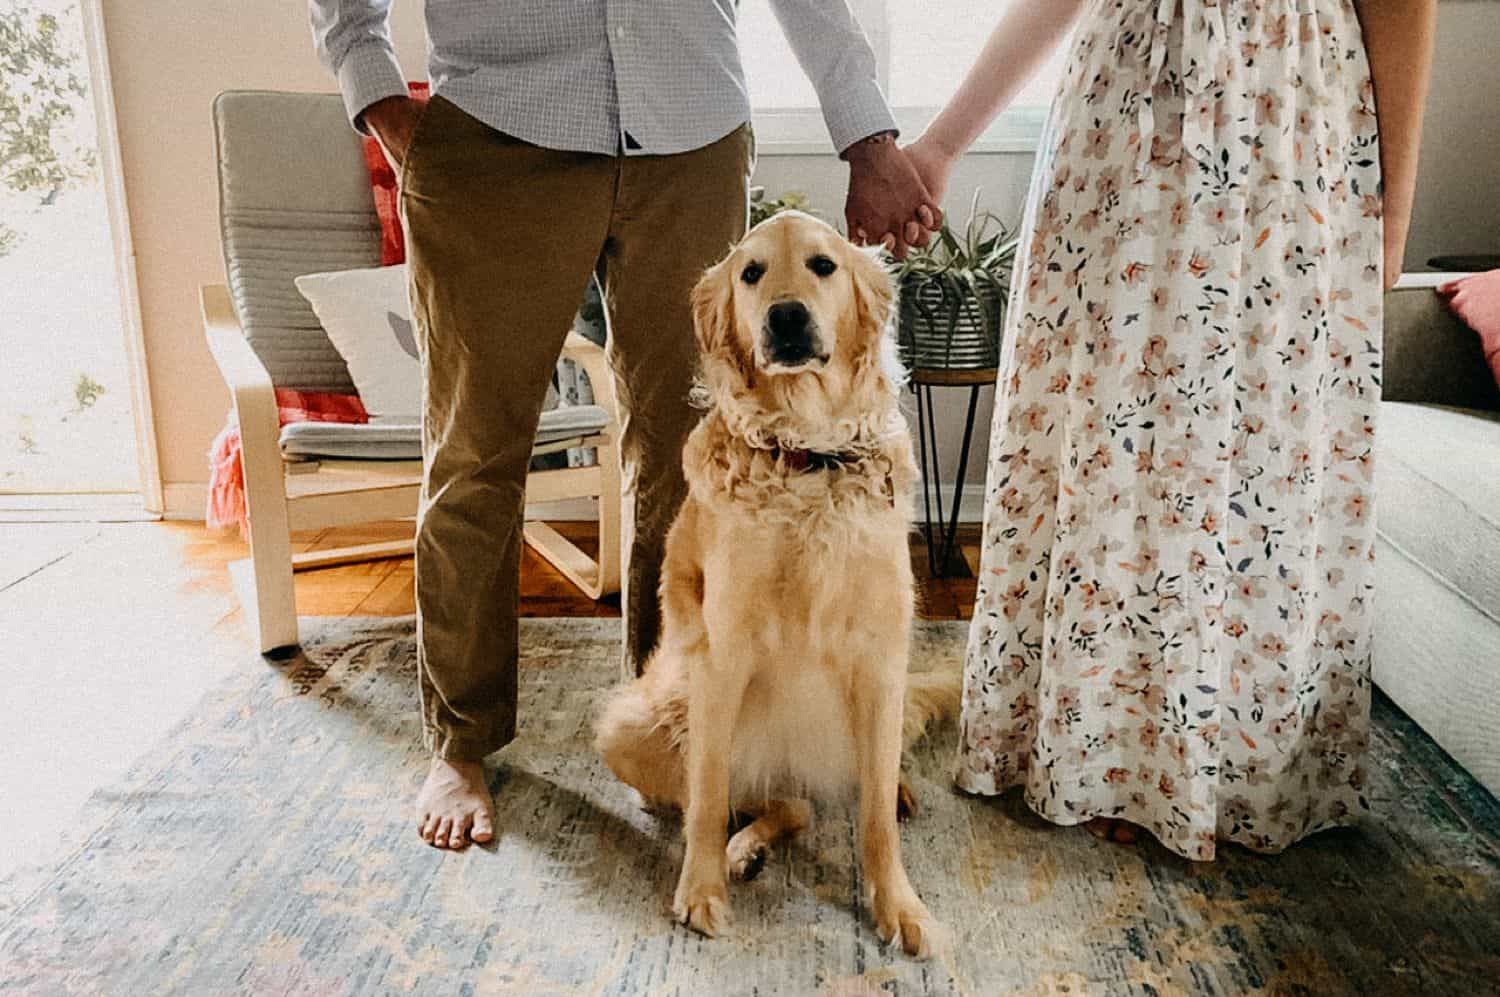 FaceTime photo of a couple holding hands over their golden retriever dog